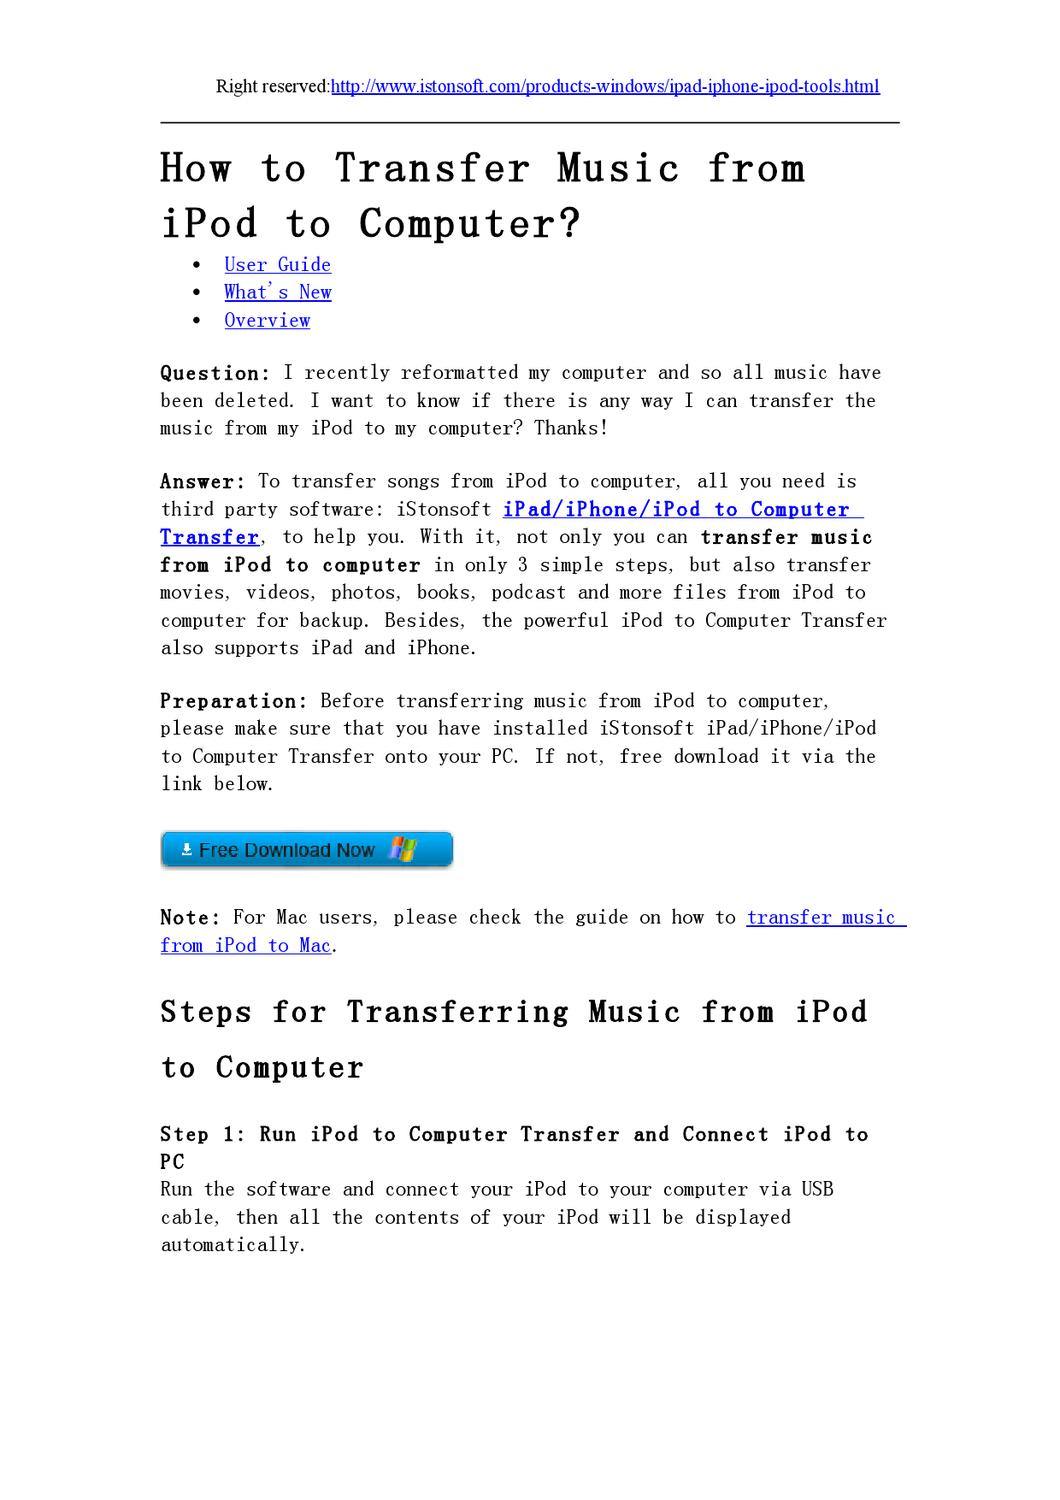 How to Transfer Music from iPod to Computer - Transferring